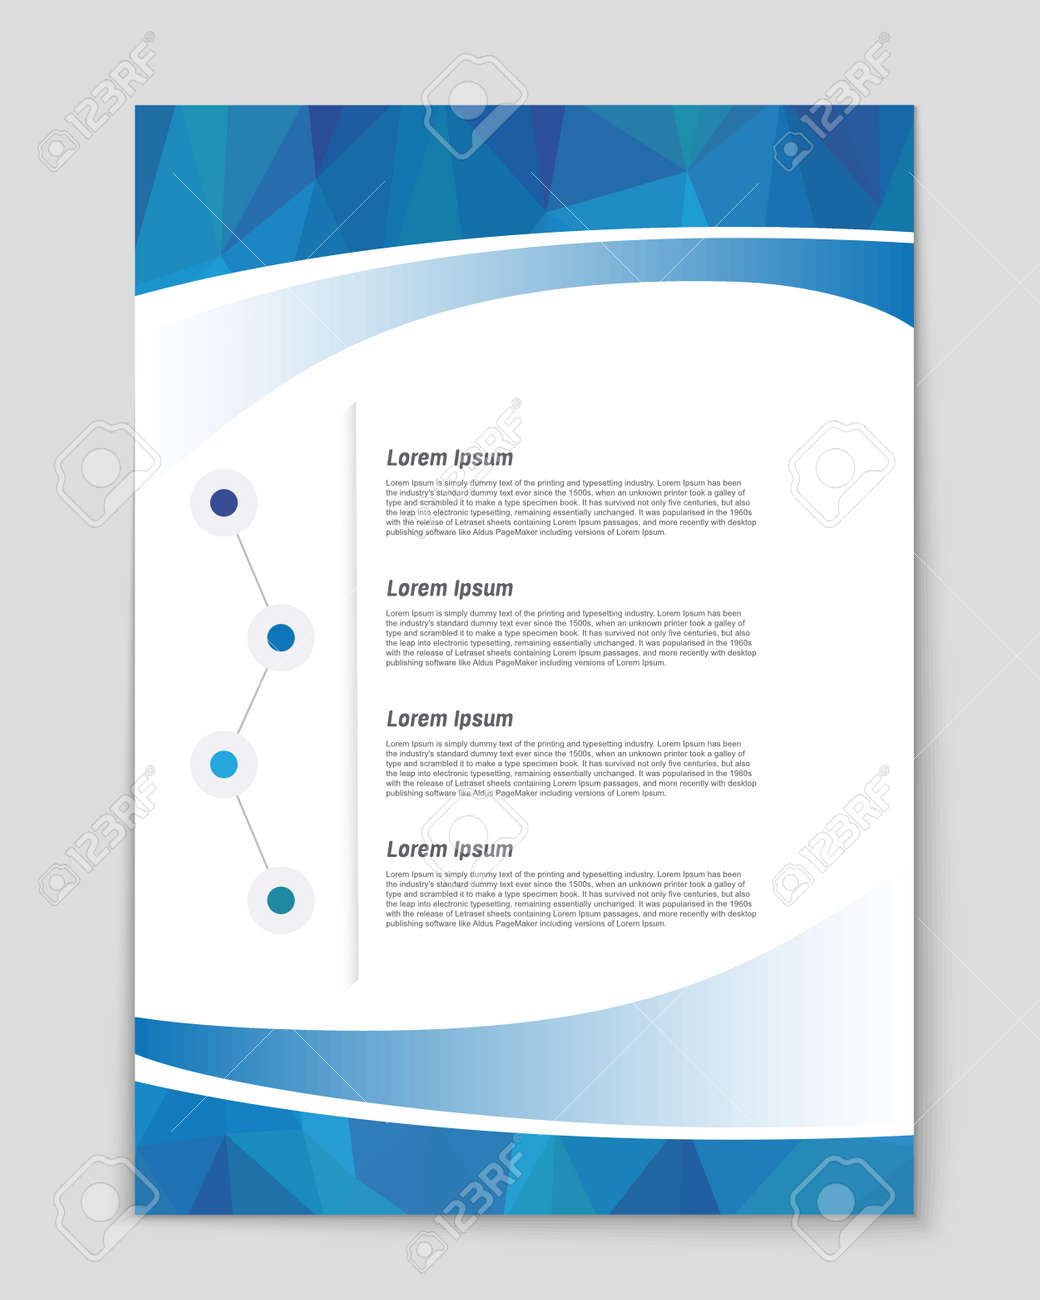 Abstract vector background for web and mobile applications, art template design, list, page, mockup brochure theme style, banner, idea, booklet, document, flyer, book, blank, card - 53716805